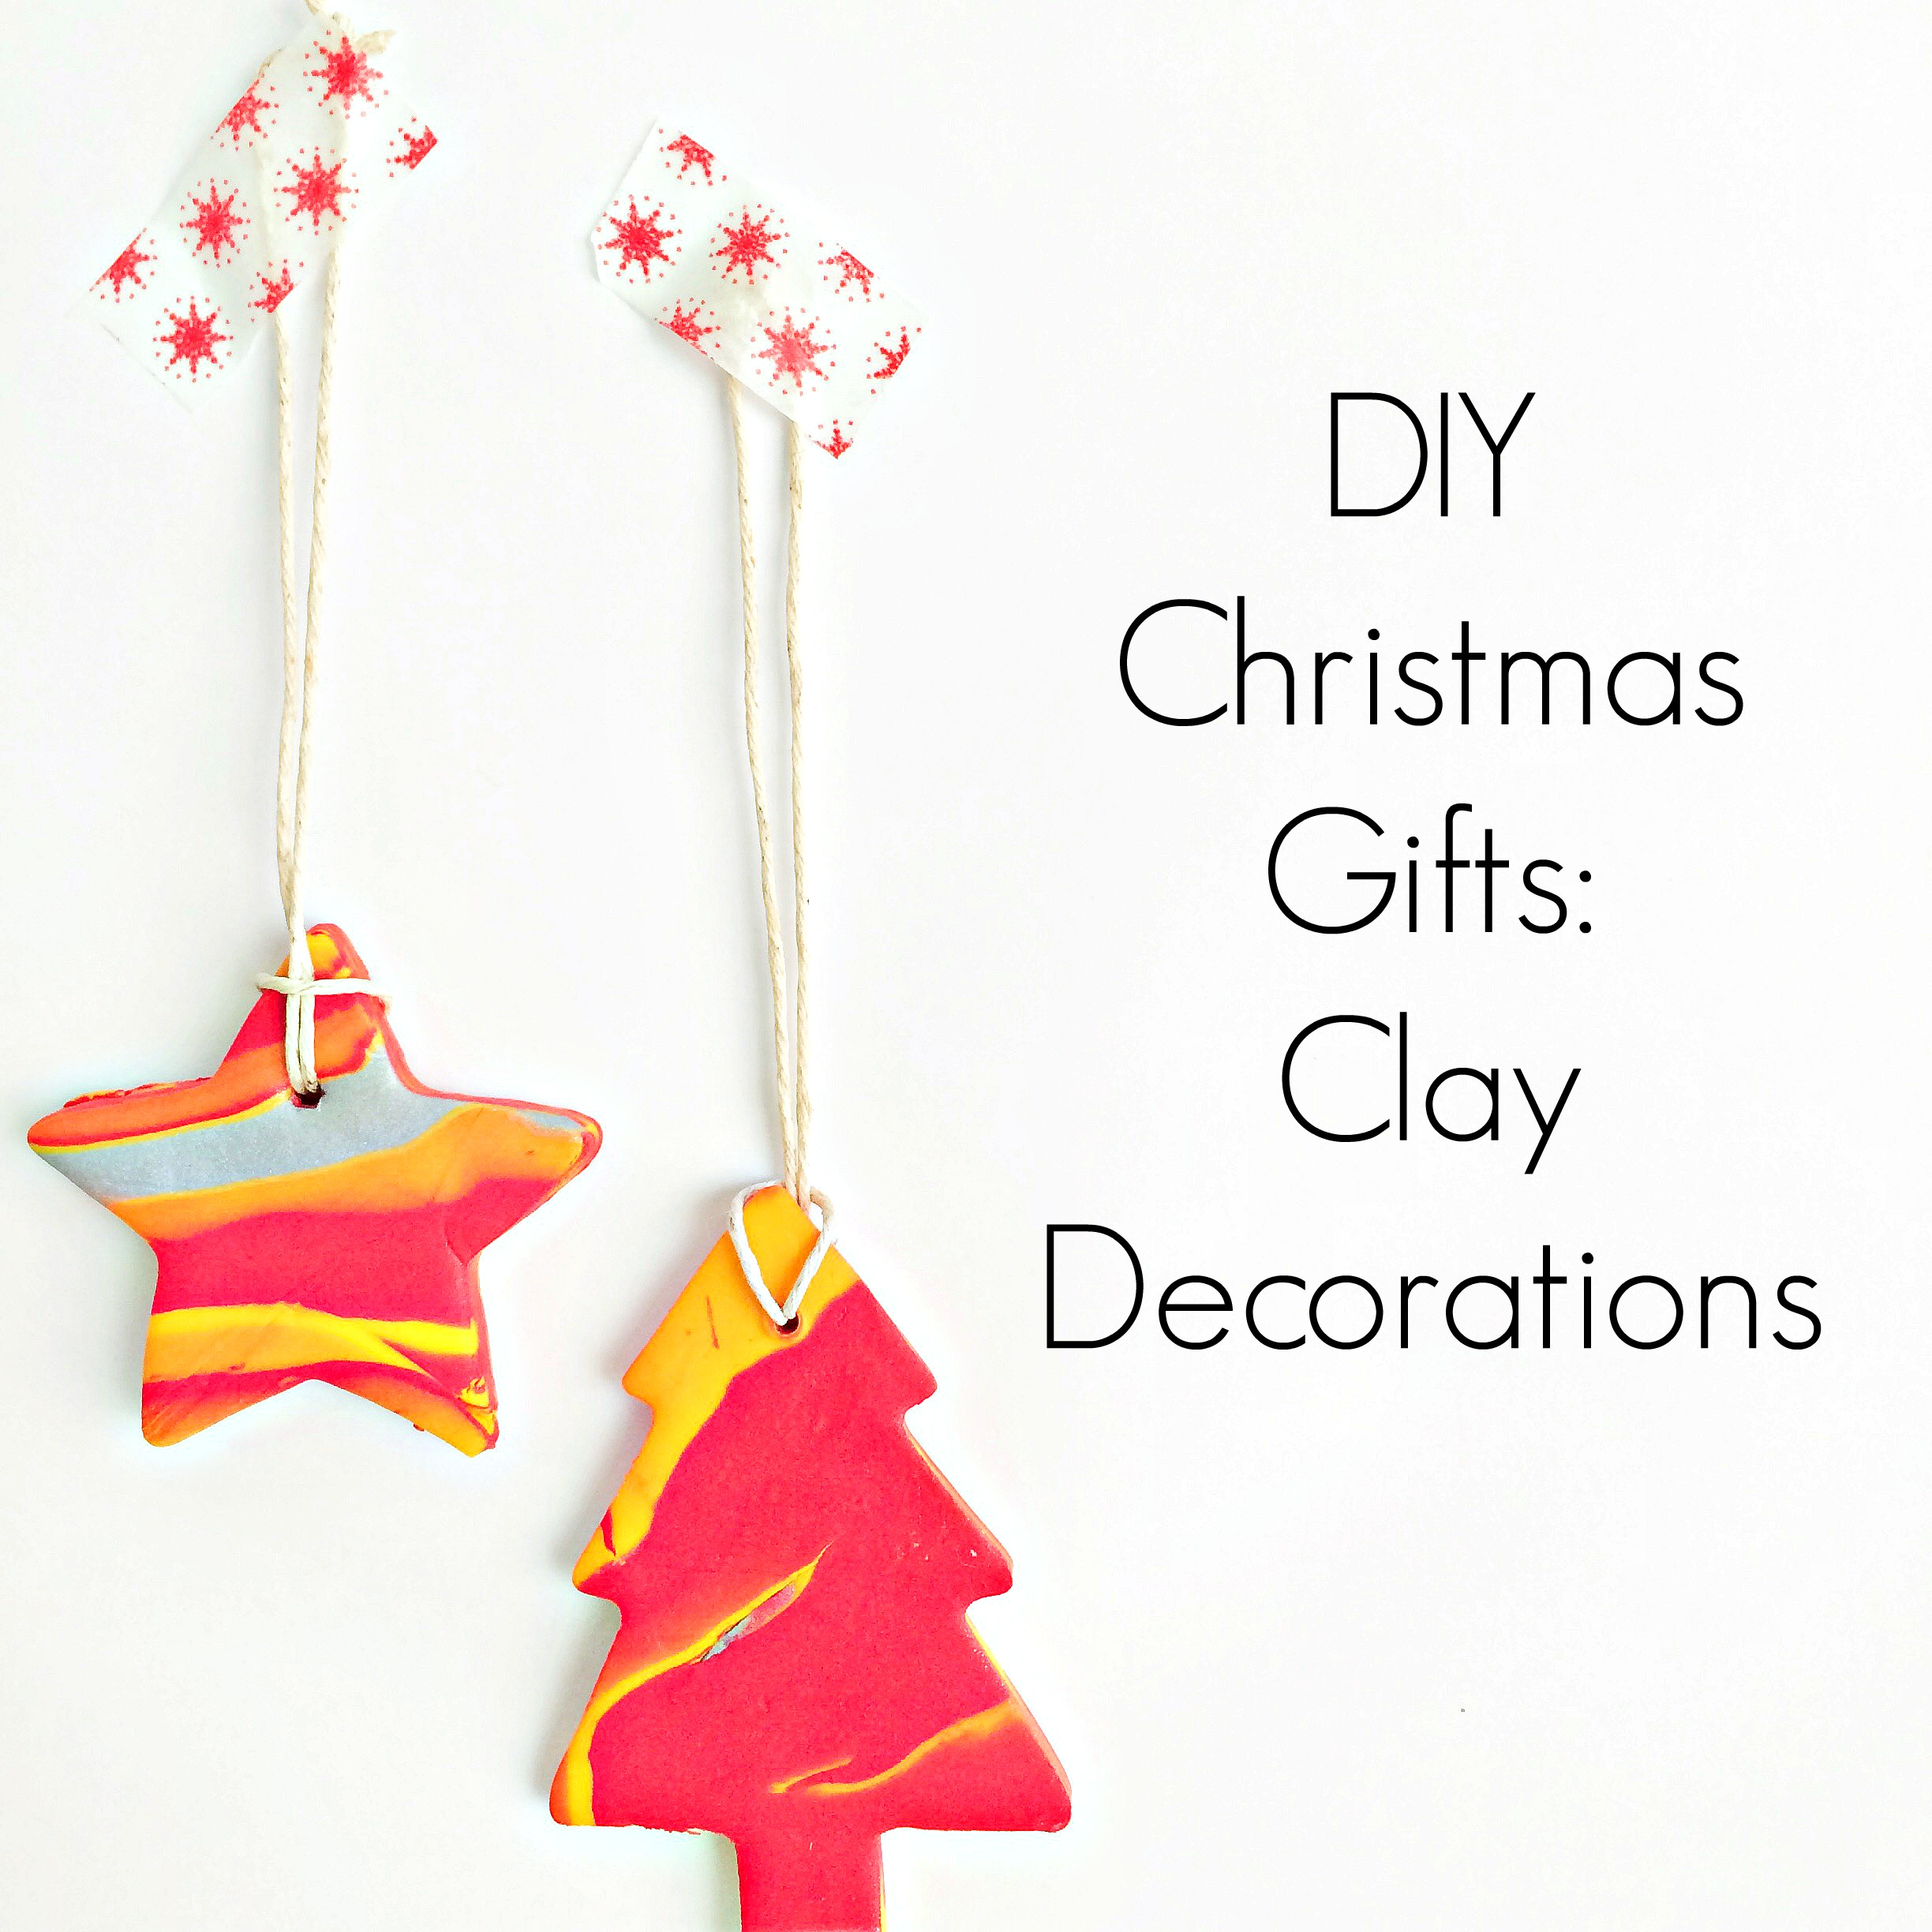 DIY Clay Decorations